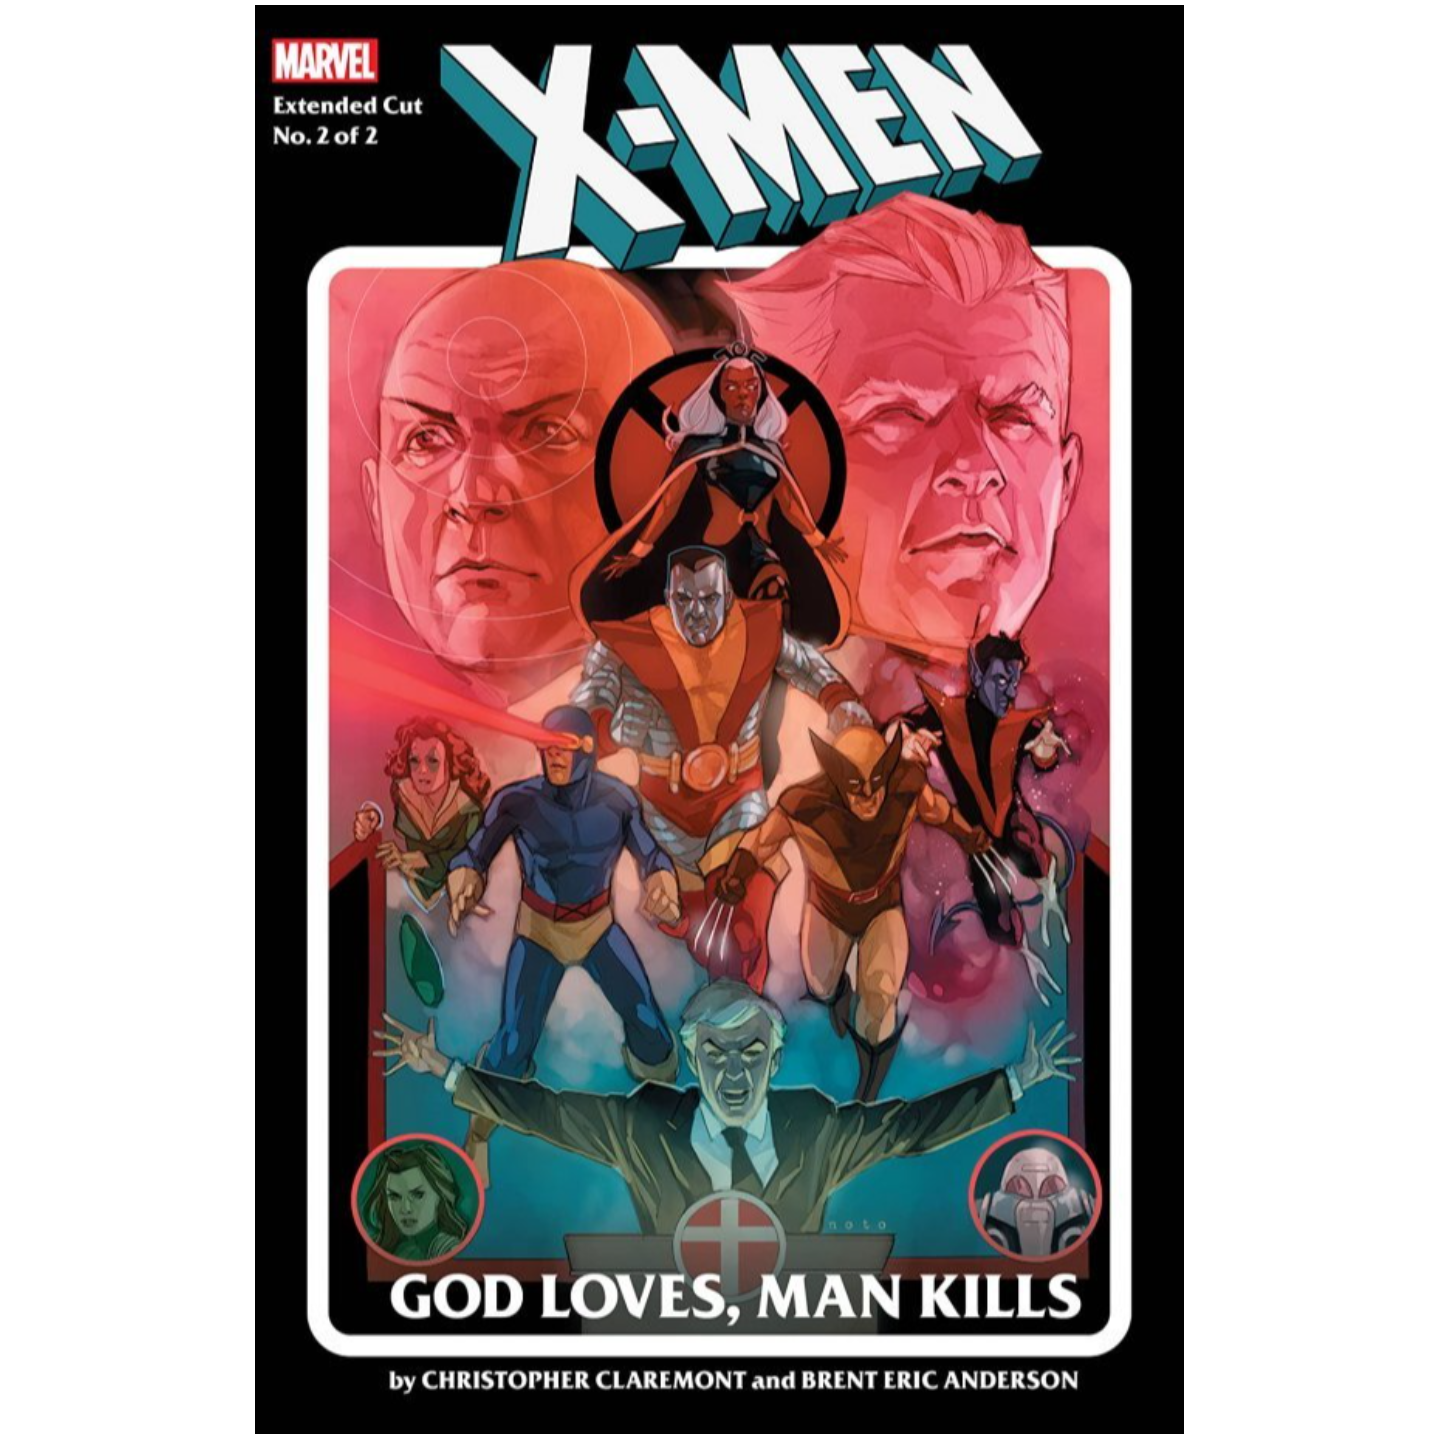 X-MEN GOD LOVES MAN KILLS EXTENDED CUT #2 (OF 2)